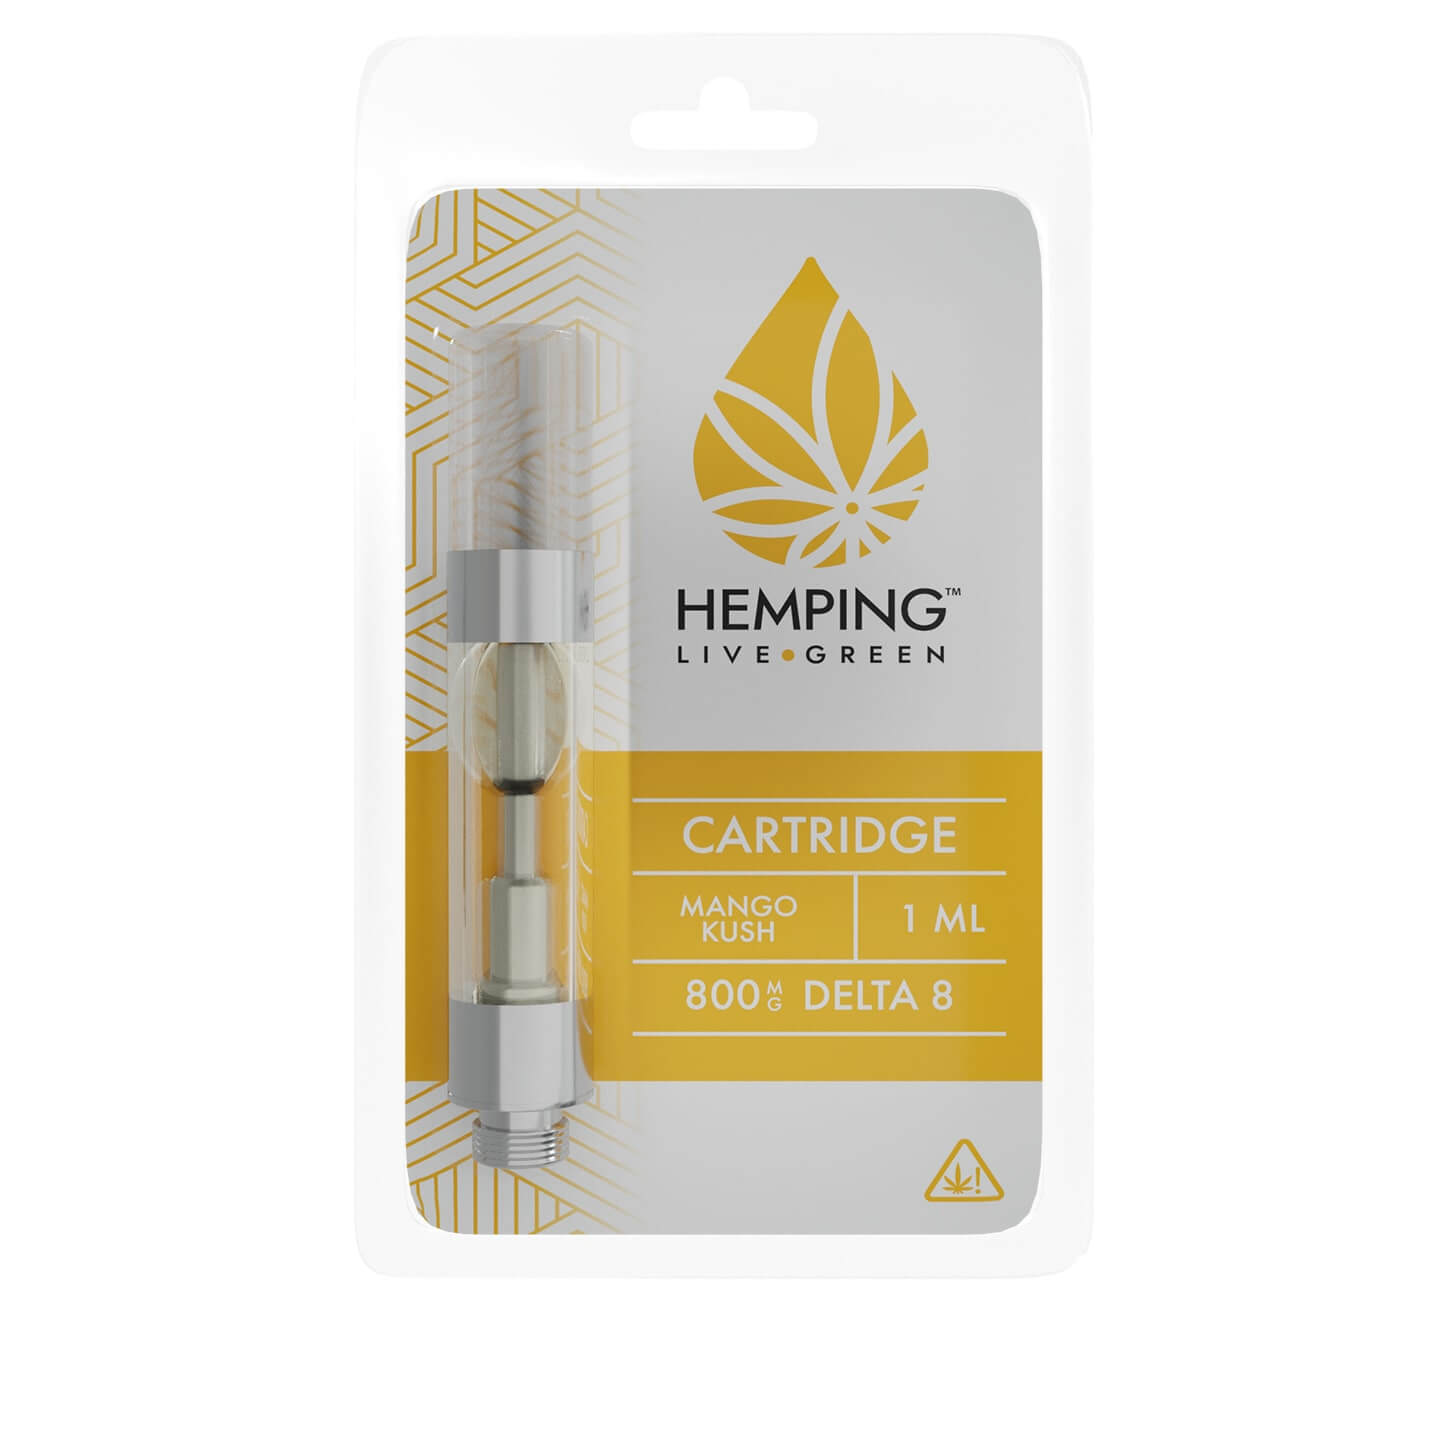 Main image of Delta 8 THC Cartridge (Mango Kush)